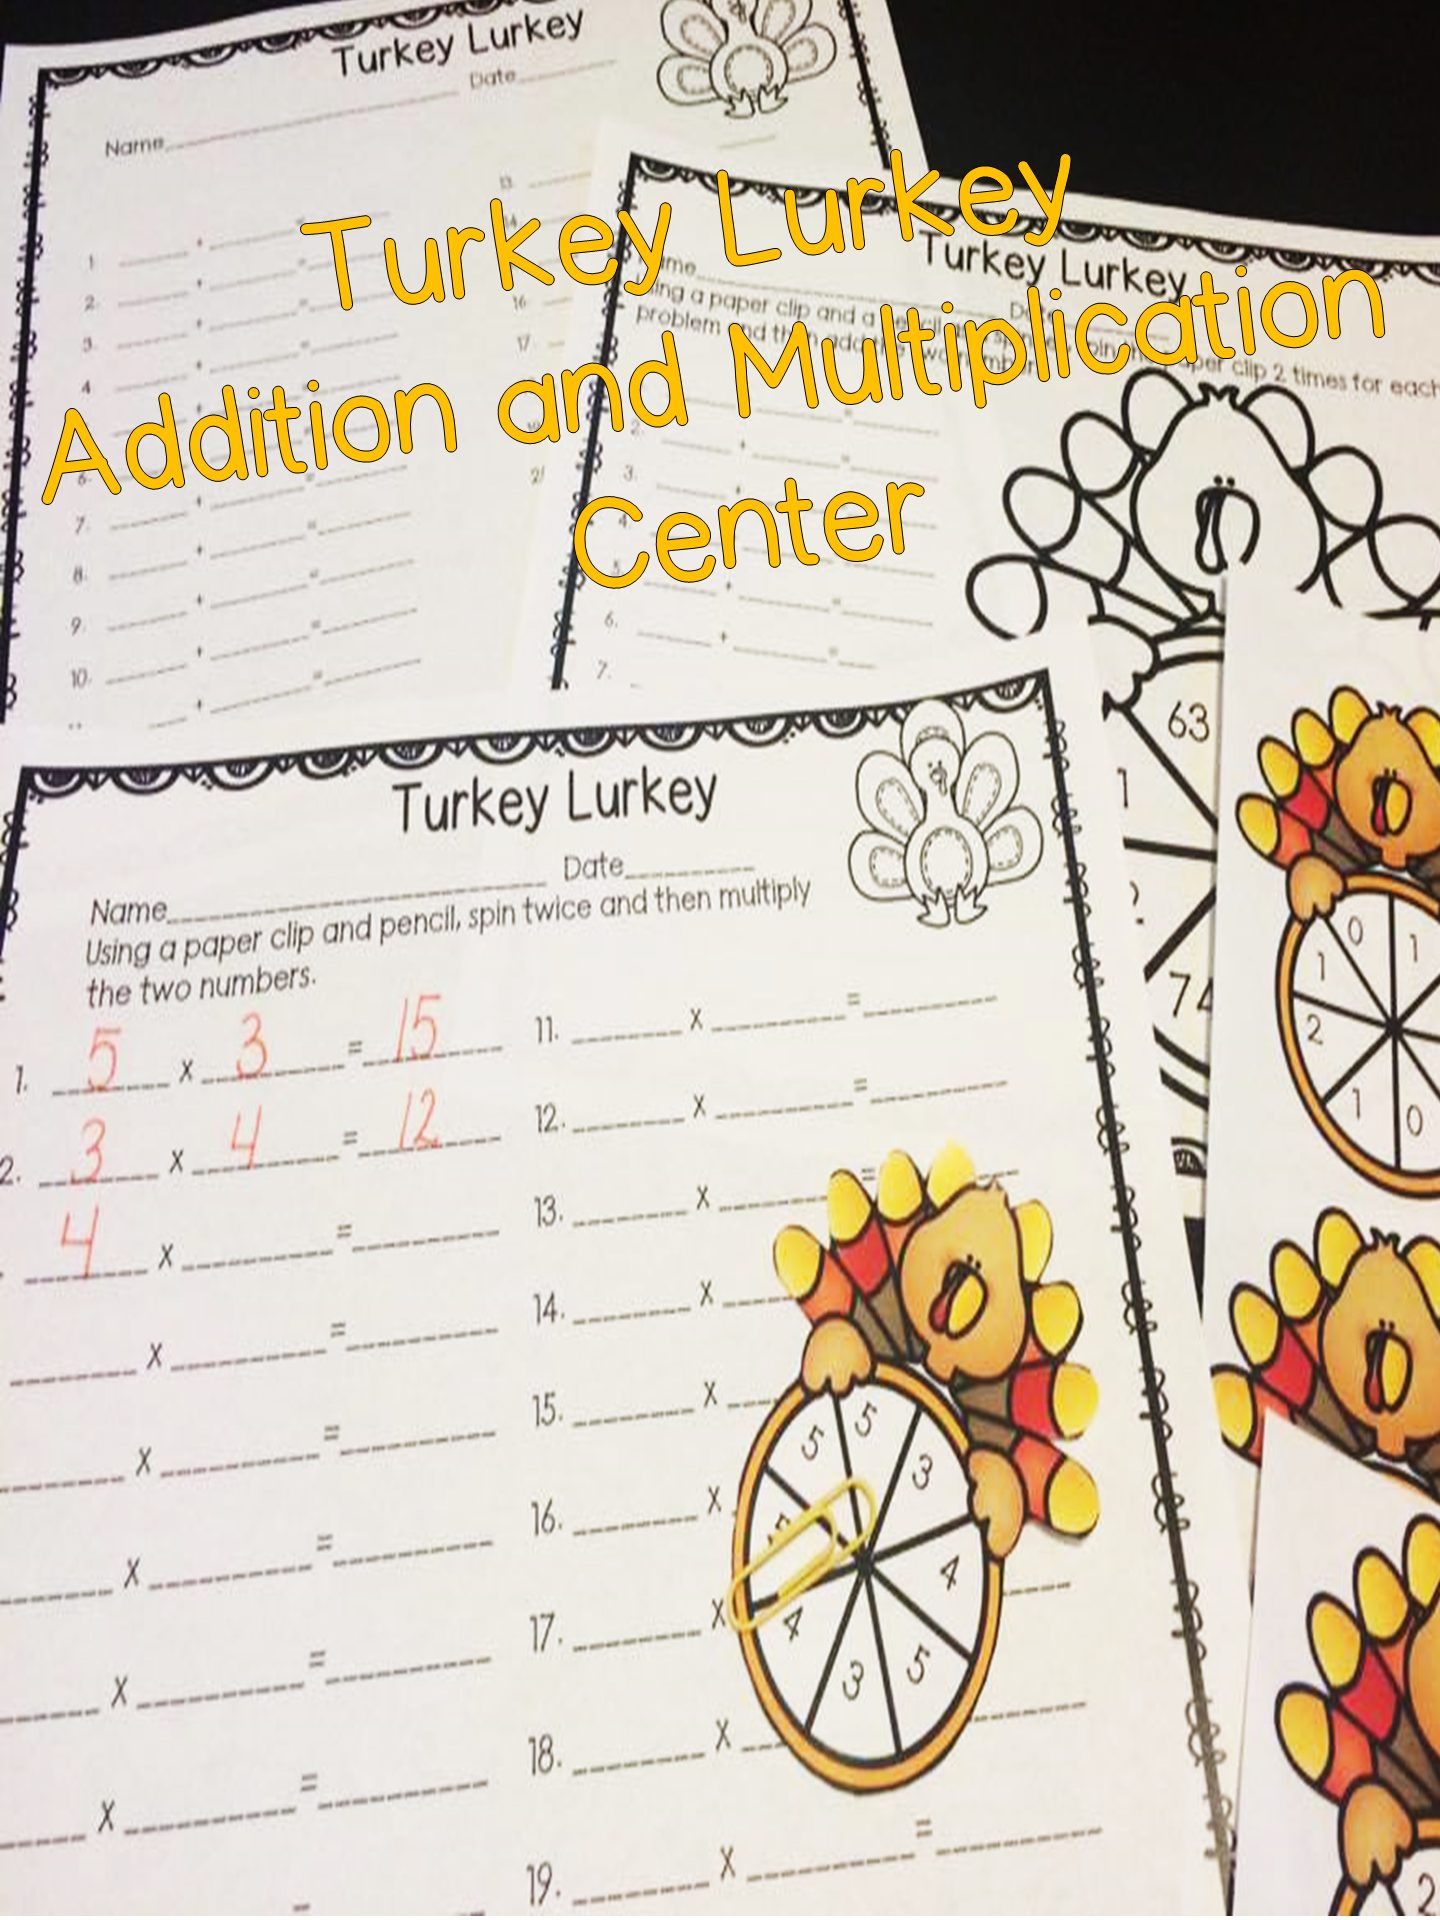 Addition And Multiplication Spinner Center